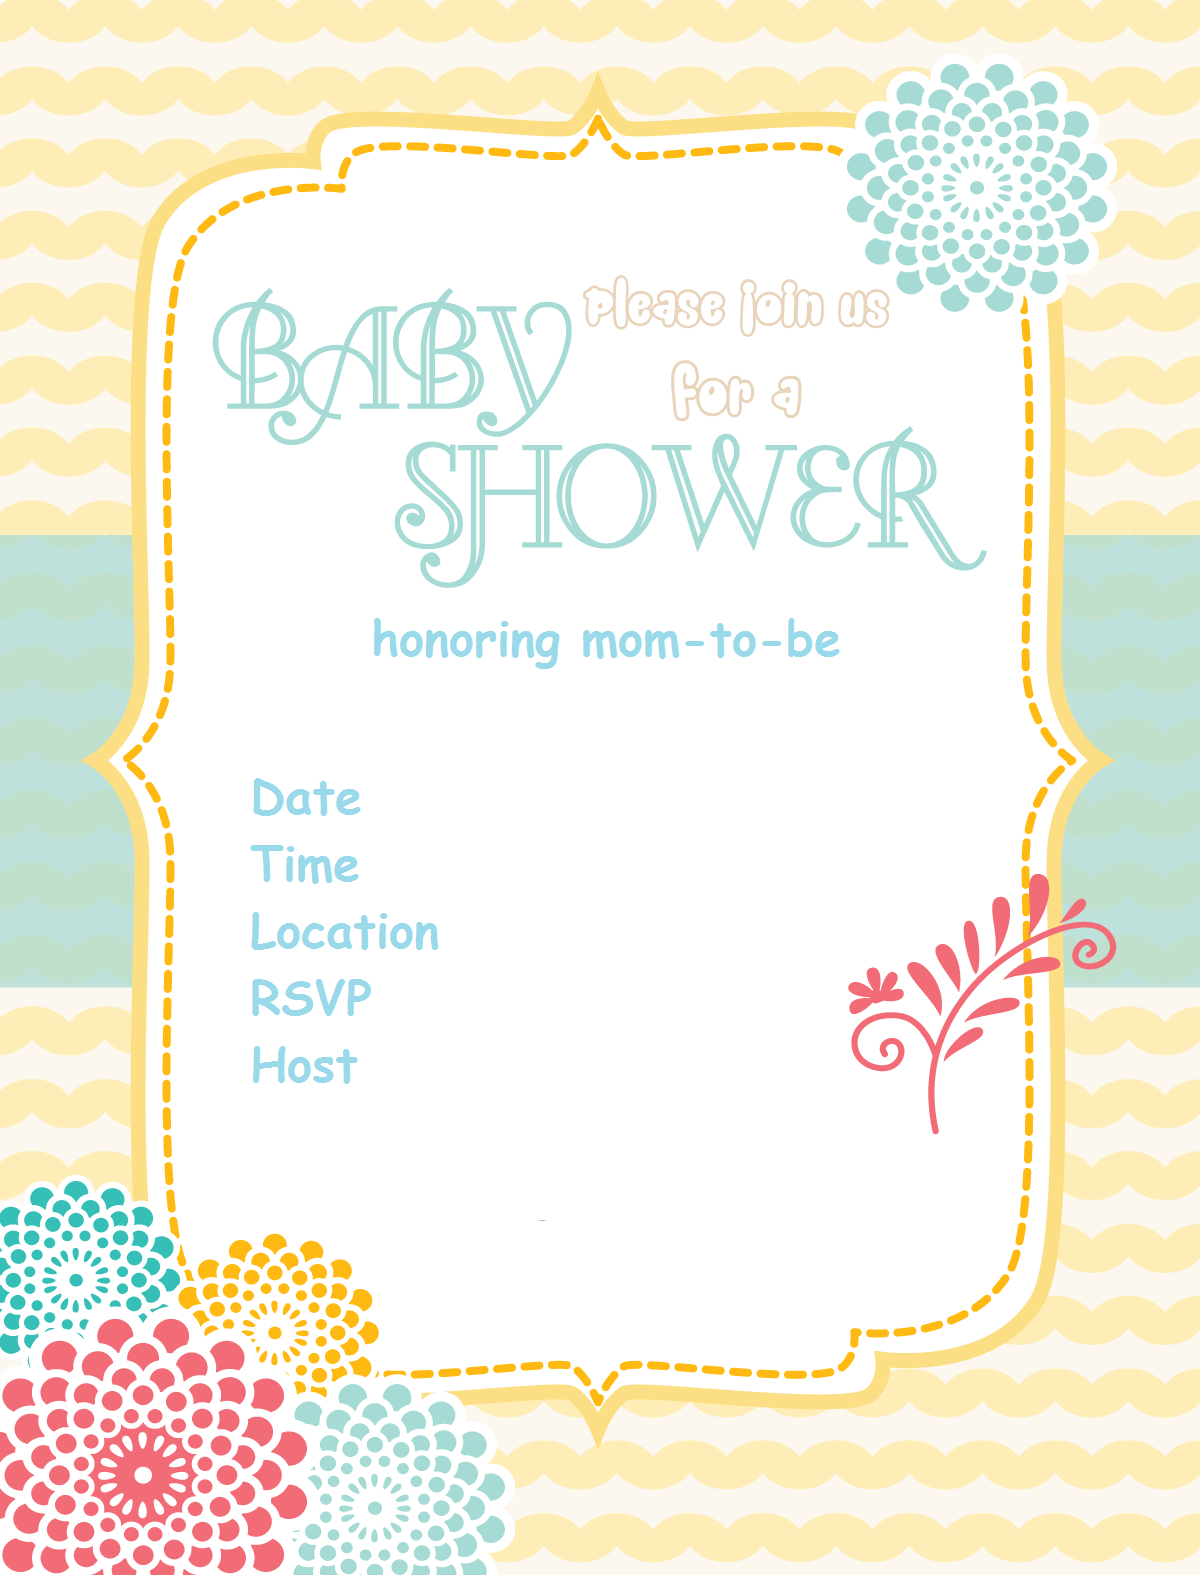 Free Printable Baby Shower Invitations - Baby Shower Ideas - Themes - Free Printable Baby Shower Invitations